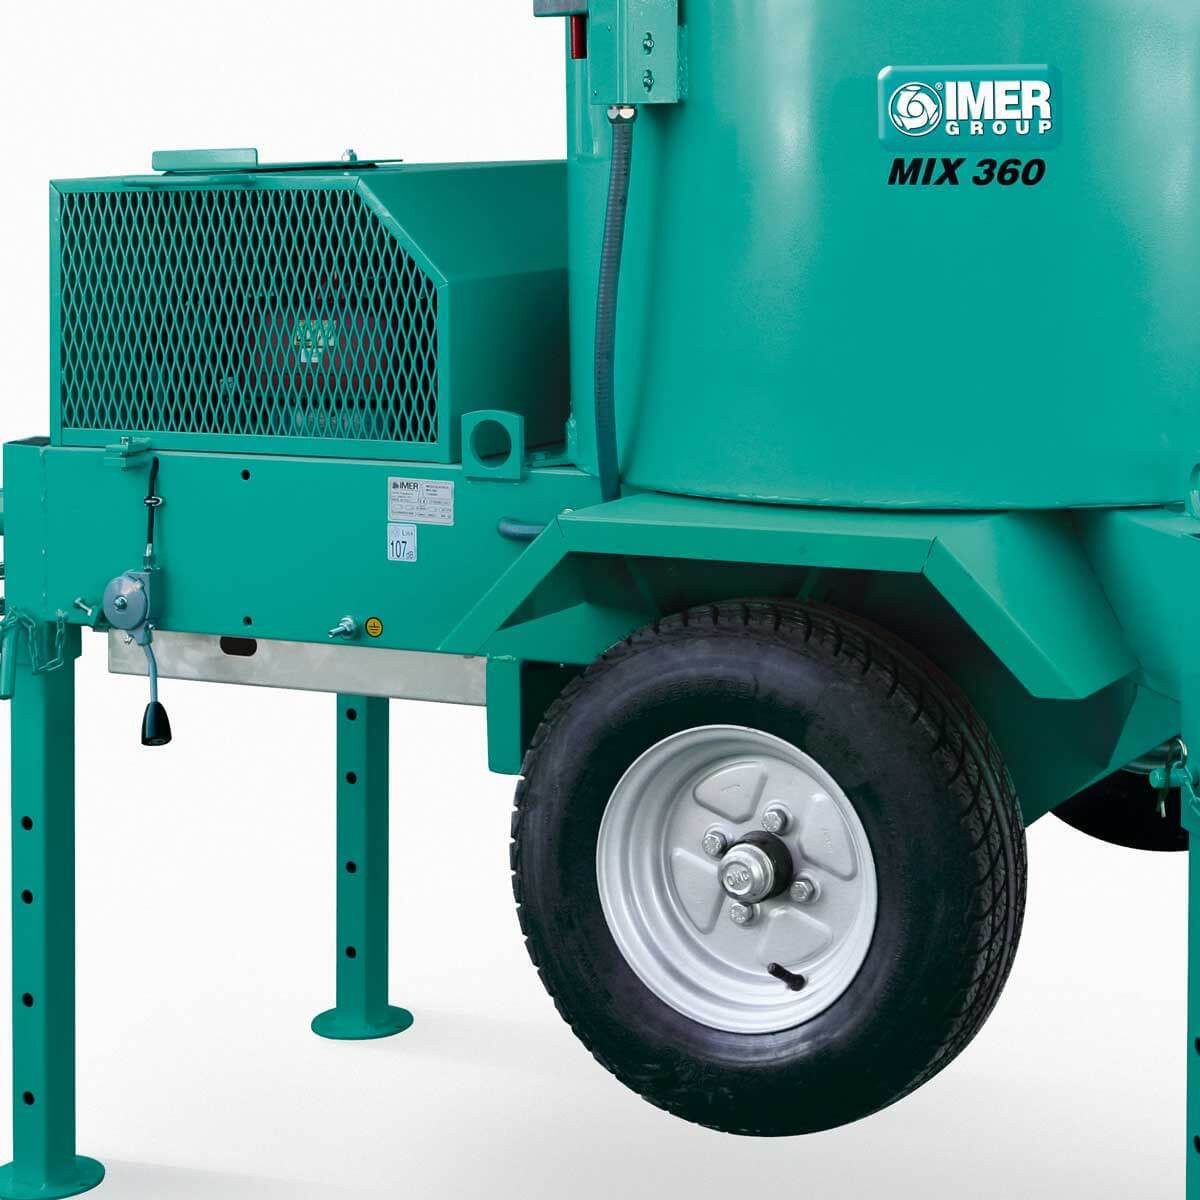 Imer Mortarman 360 Mixer motor